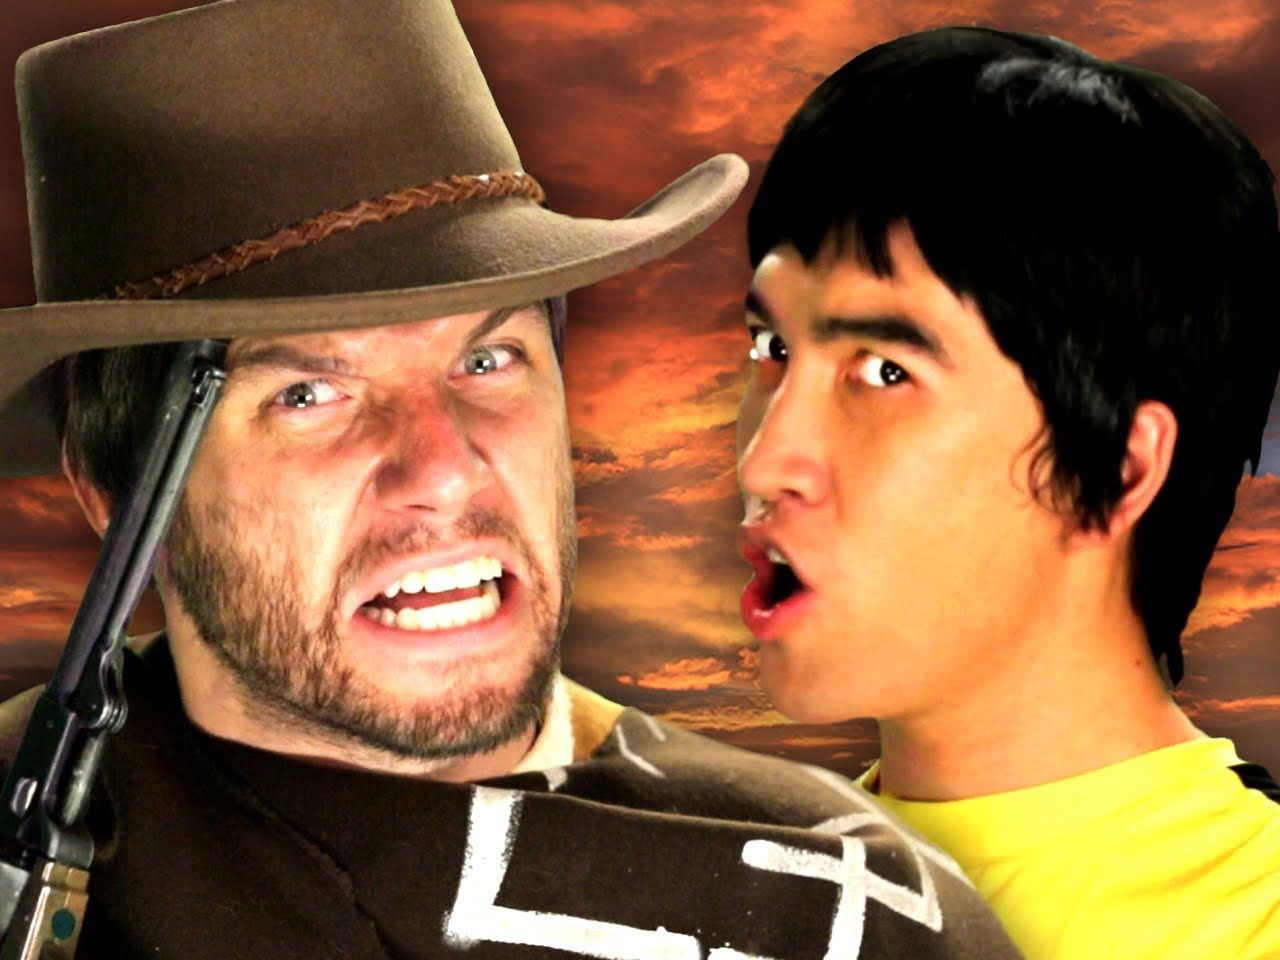 Bruce Lee Vs Clint Eastwood Epic Rap Battles Of History Season 2